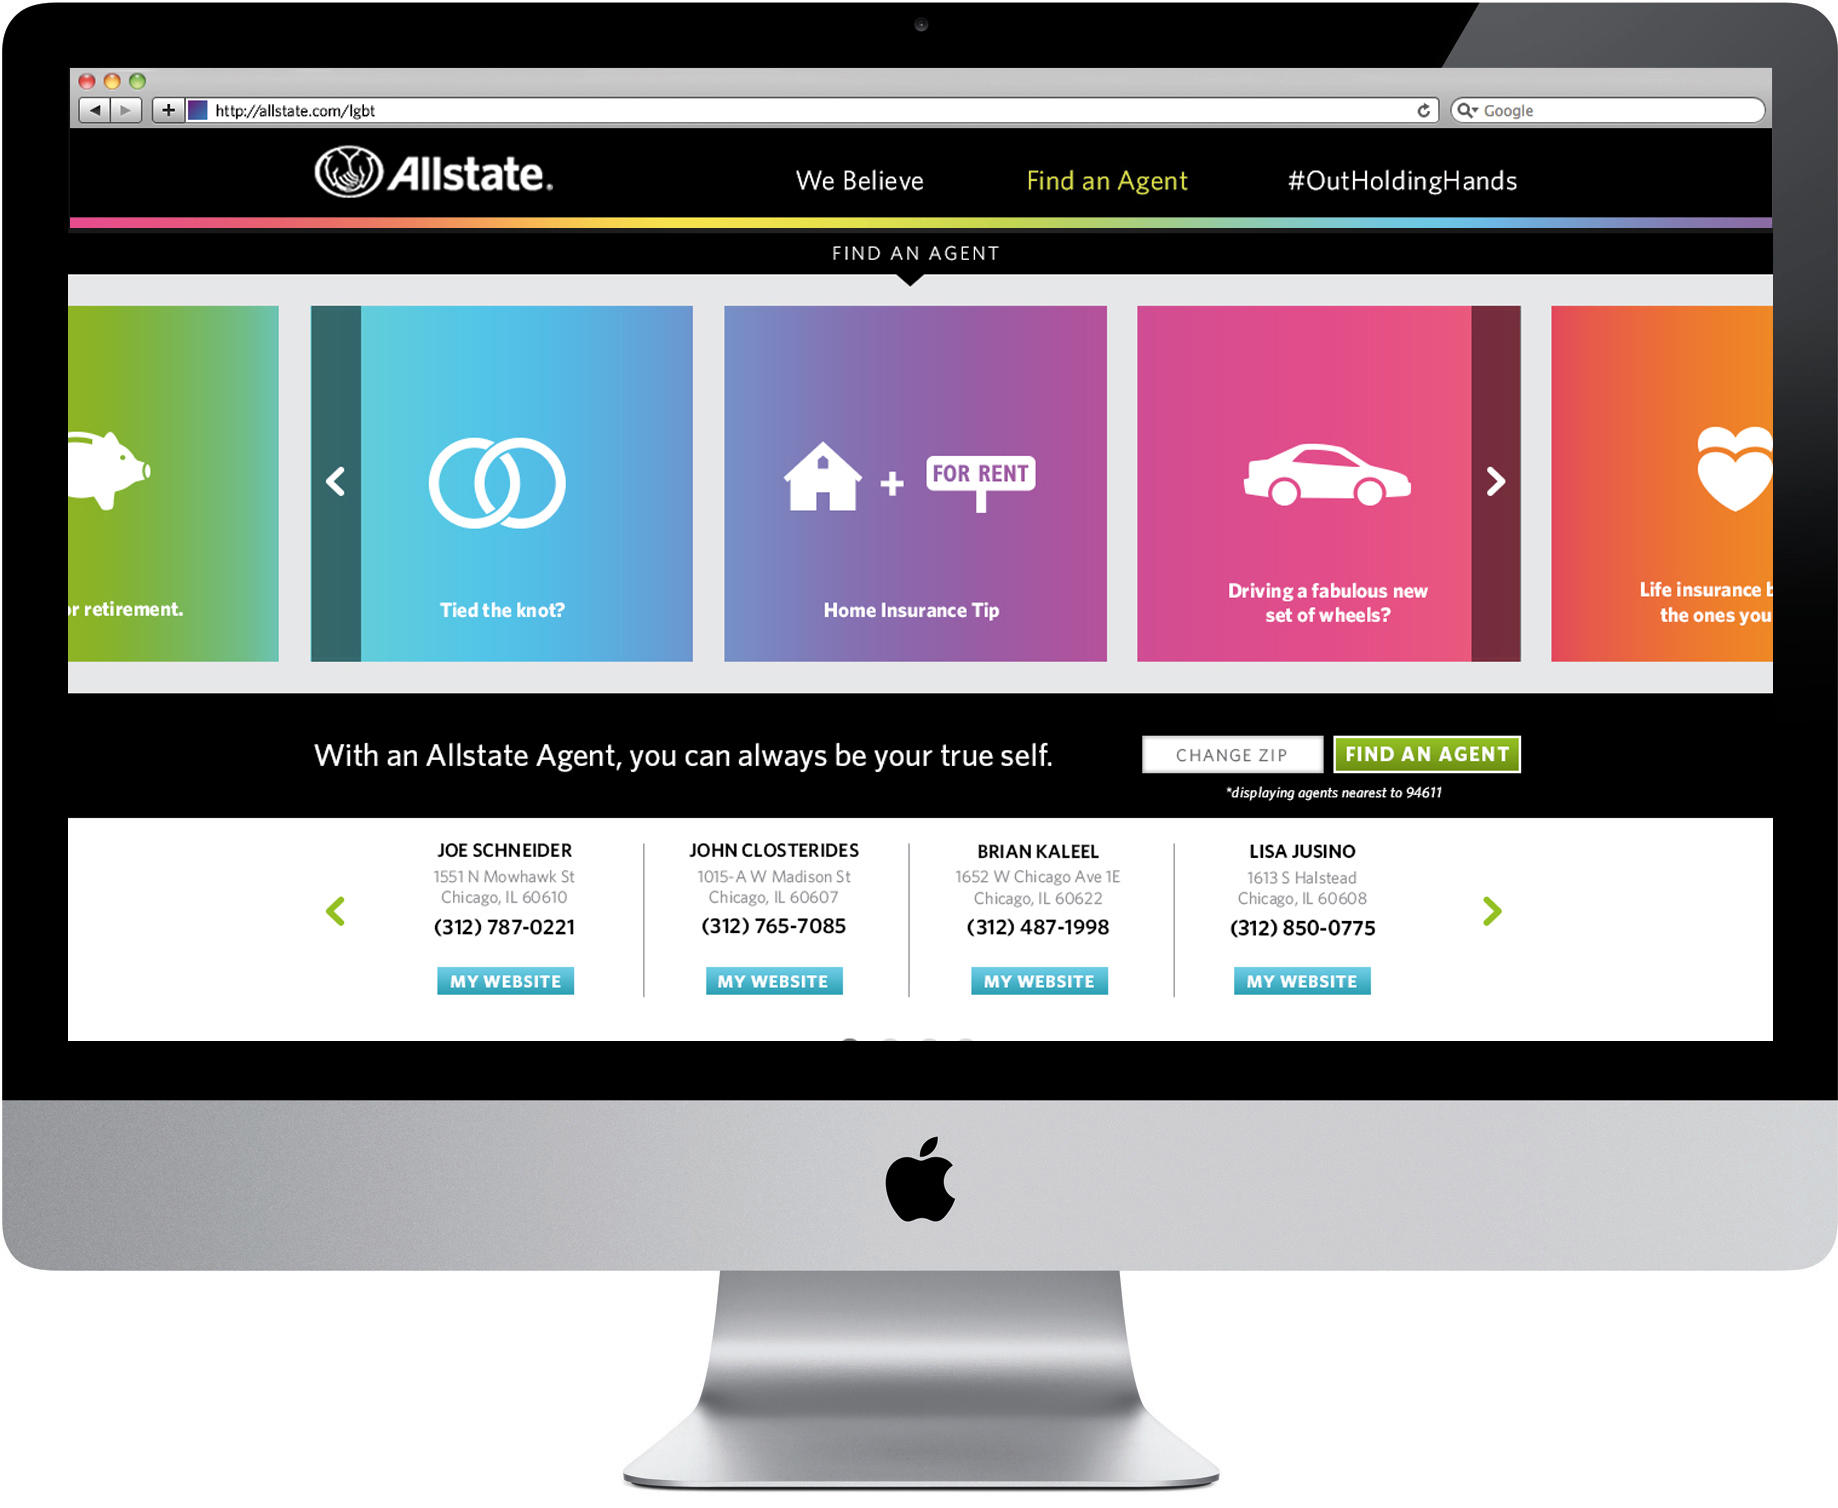 Allstate-LGBT-Website-3a.jpg